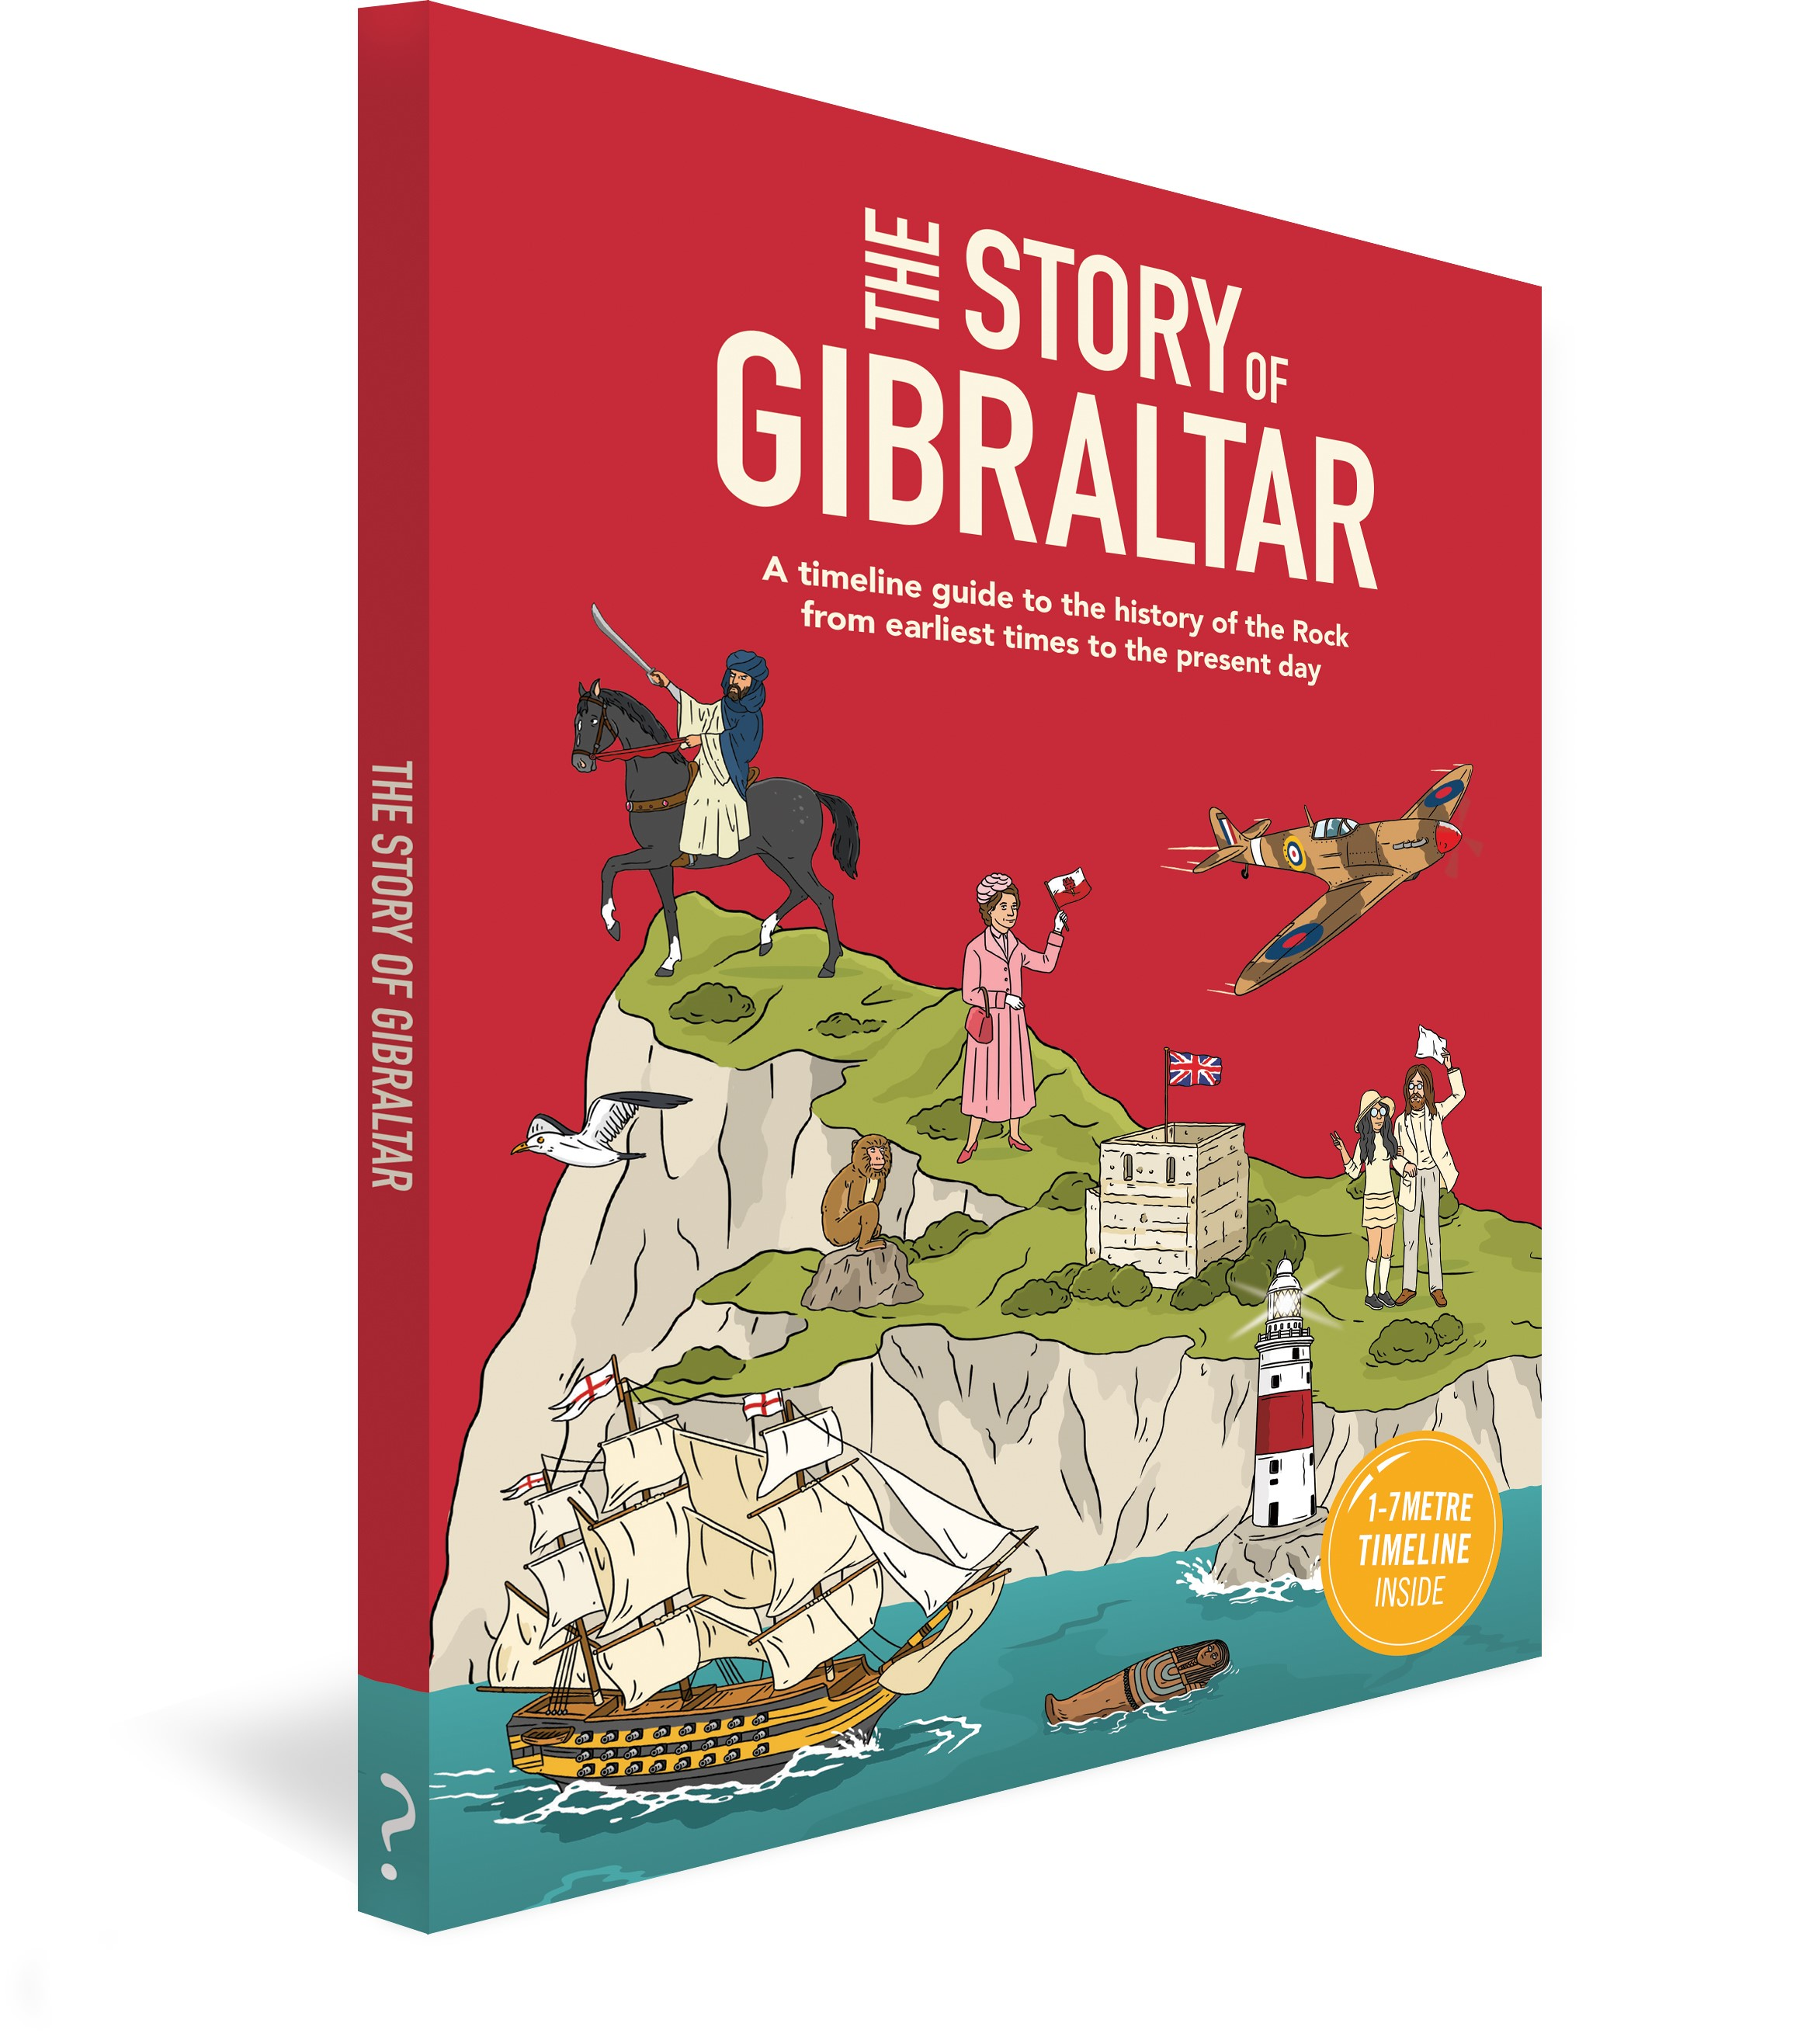 'The Story of Gibraltar' Book Launch